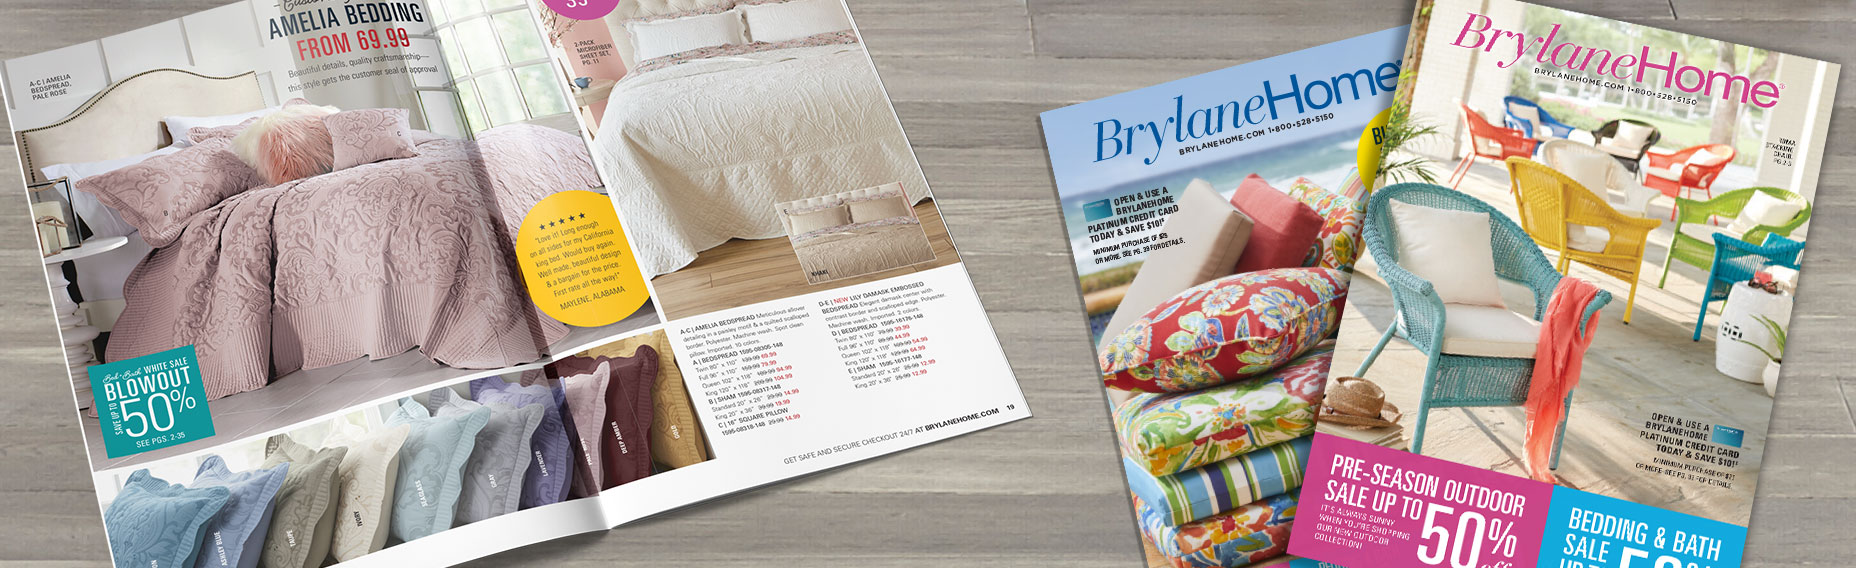 BrylaneHome Catalog Preferences